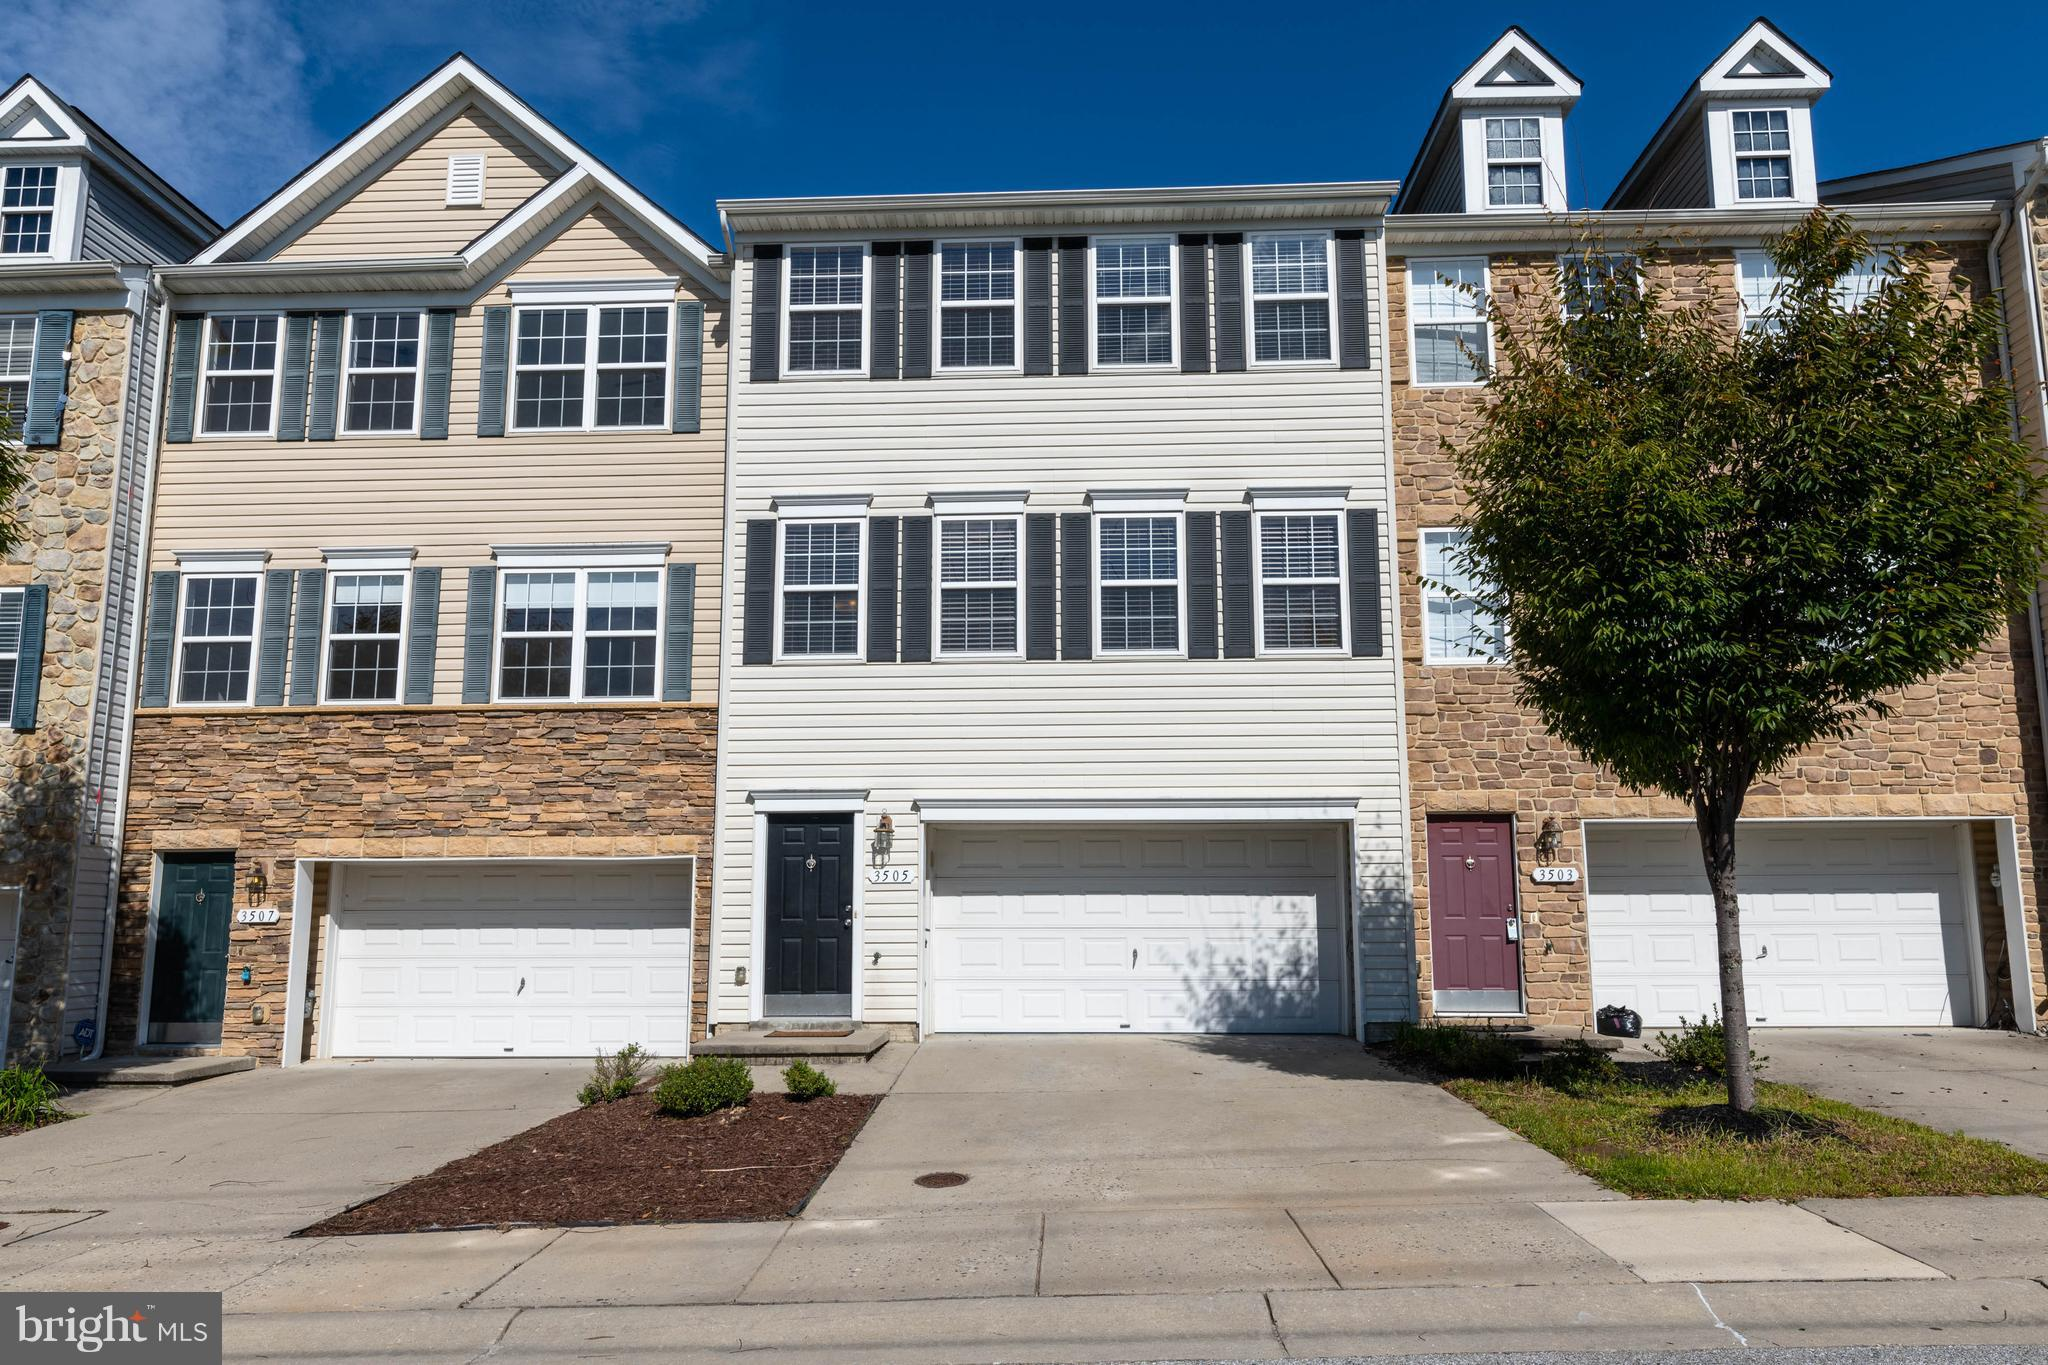 HURRY TO SEE THIS PERFECT, MOVE-IN READY HOME. FRESH PAINT+RECENT CARPET! MODERN EAT-IN KIT w/GRANIT